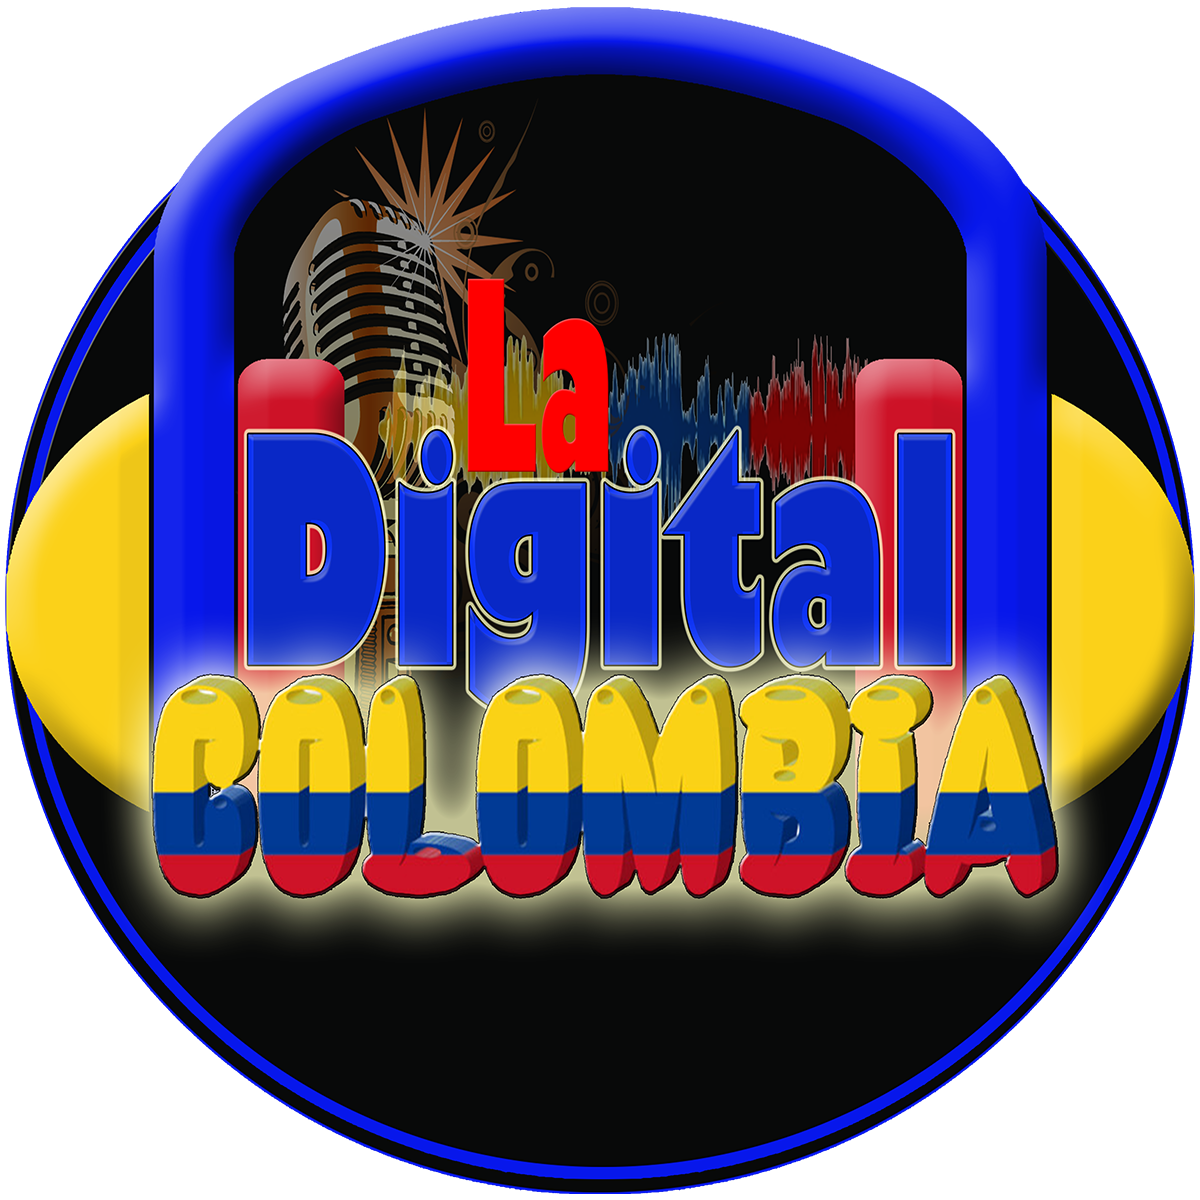 La Digital Colombia